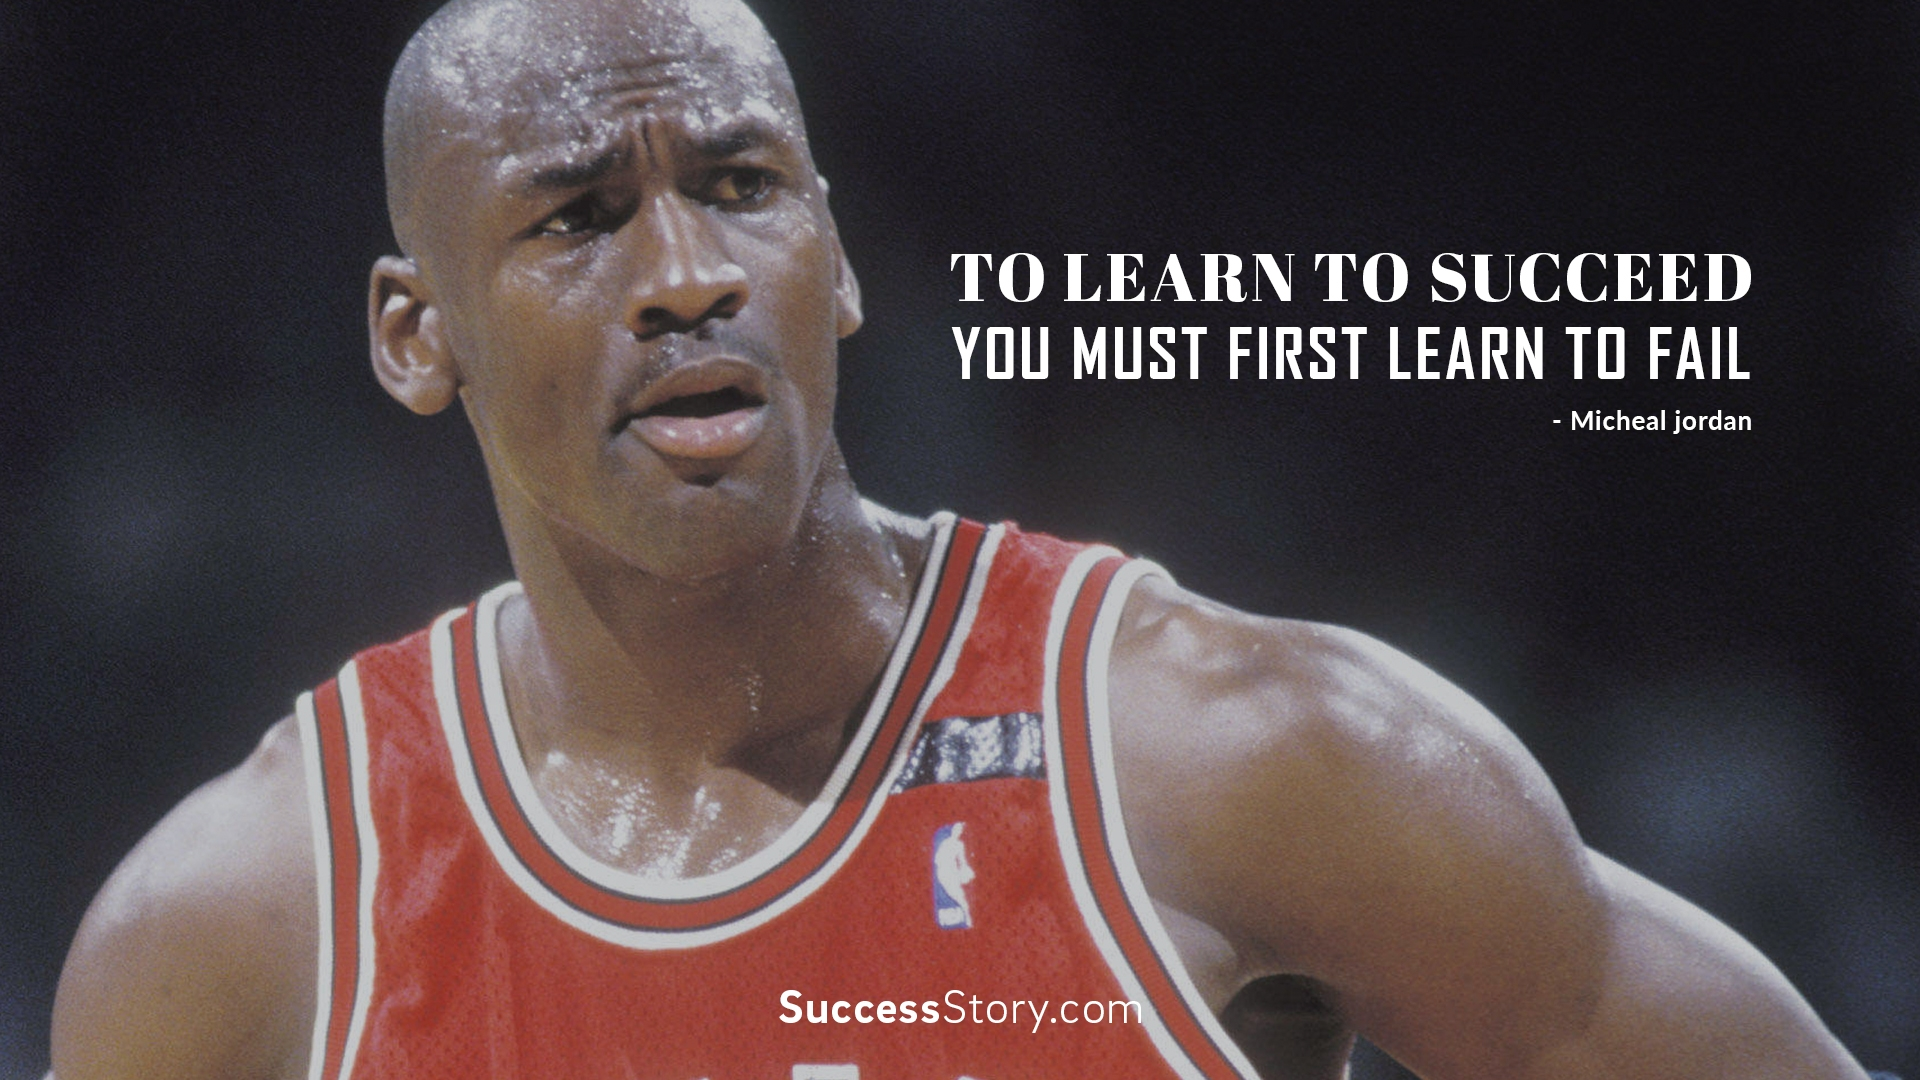 To learn to